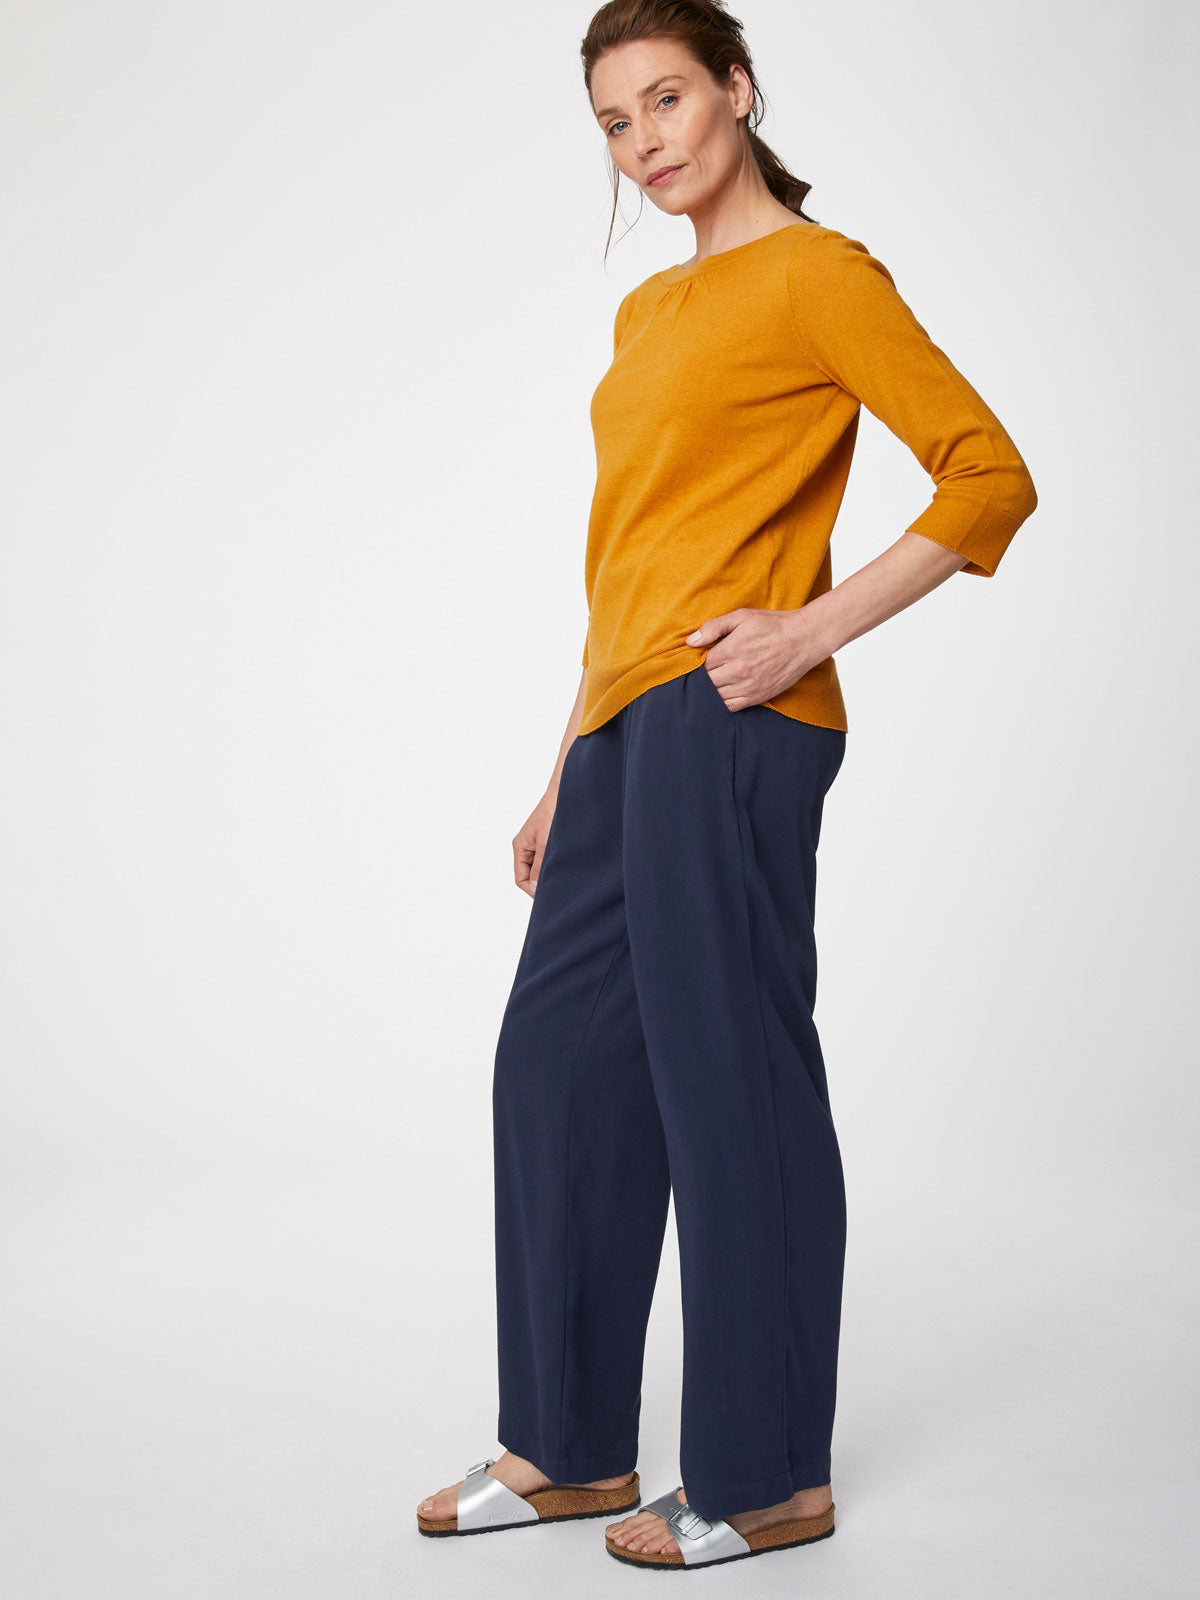 Thought Lula Jumper for Ladies in Saffron